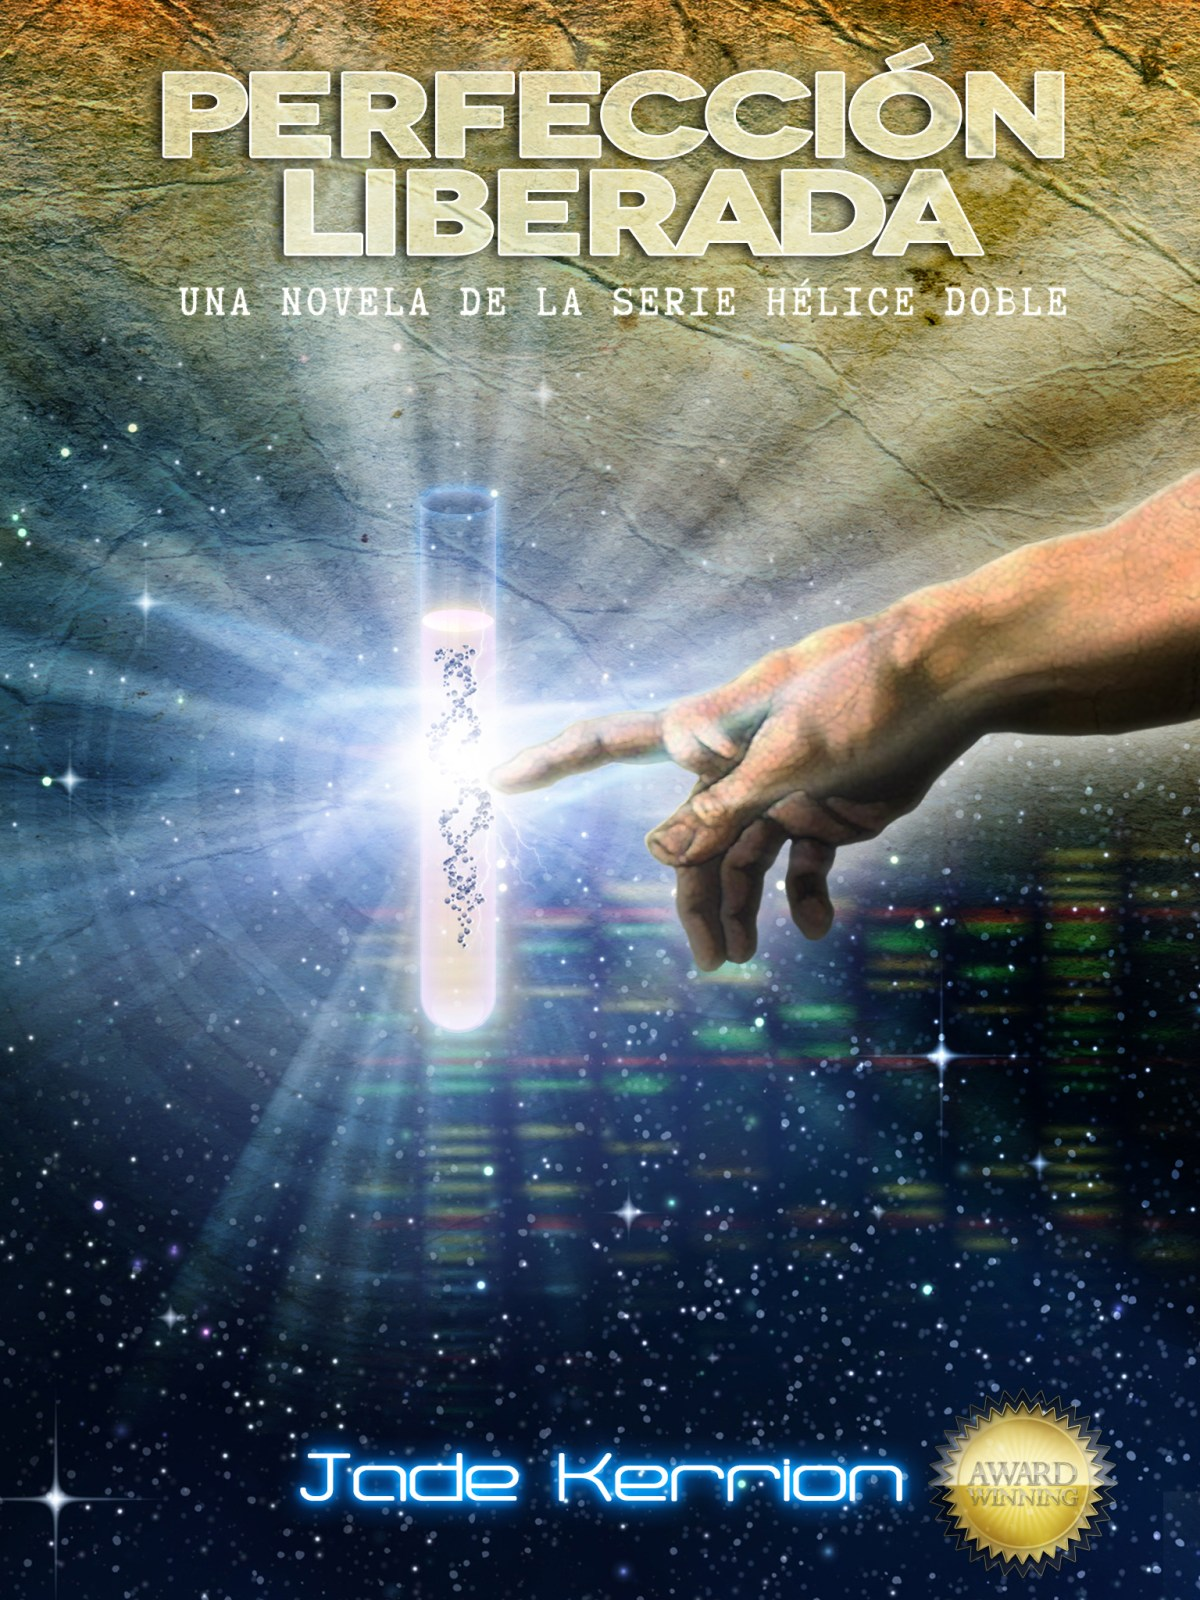 Perfeccion Liberada by Jade Kerrion